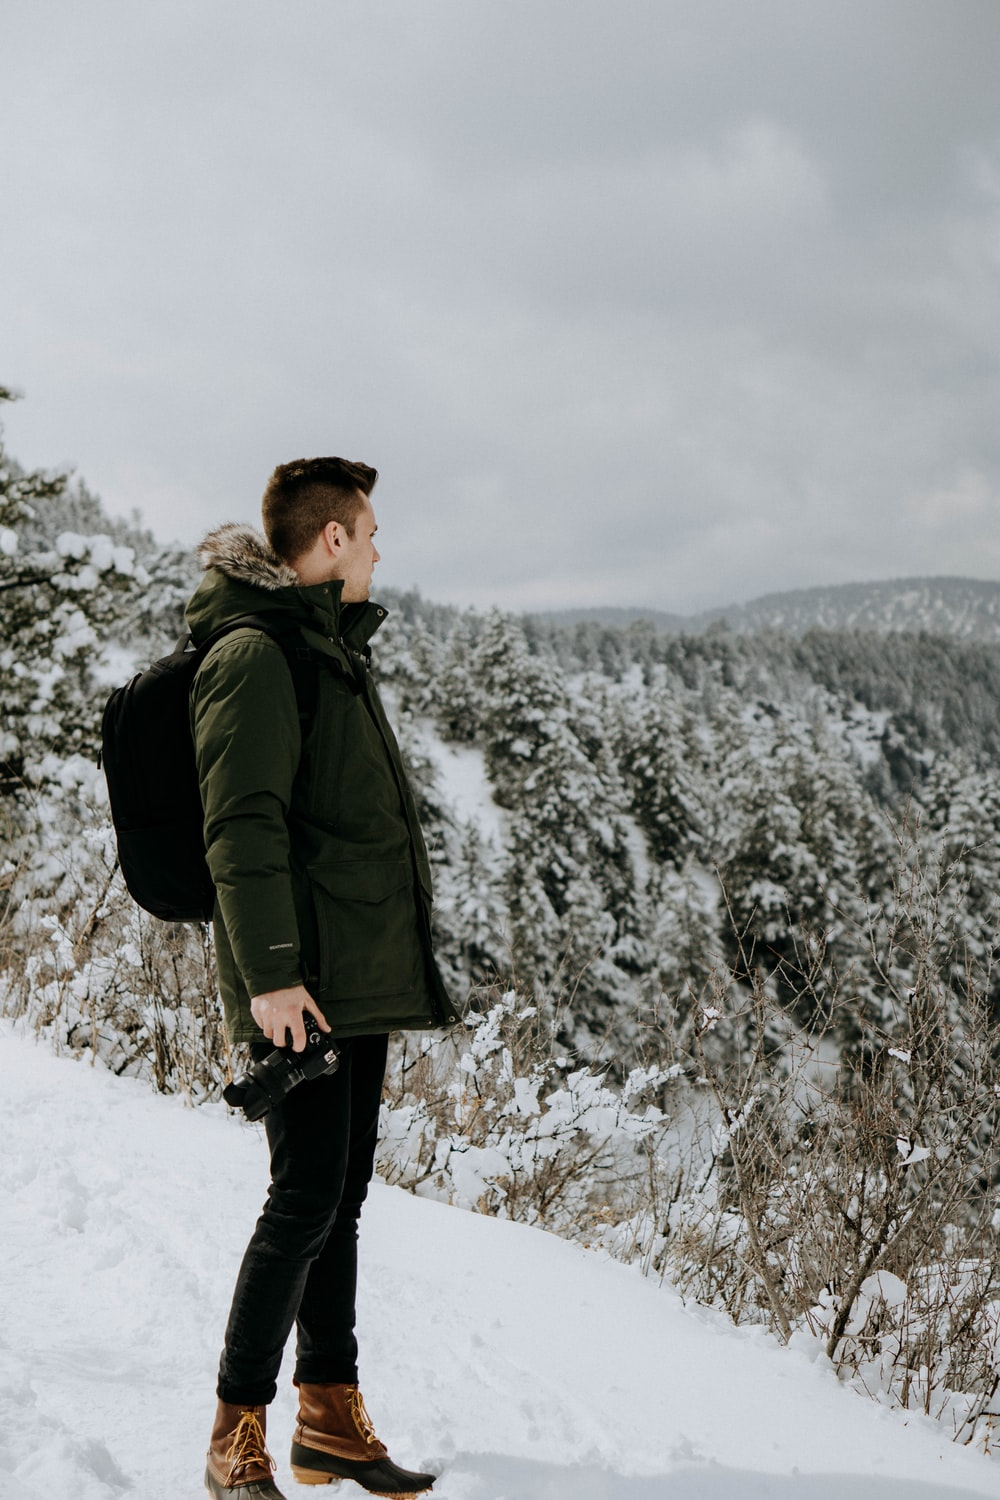 man standing on snow looking at trees under cloudy sky